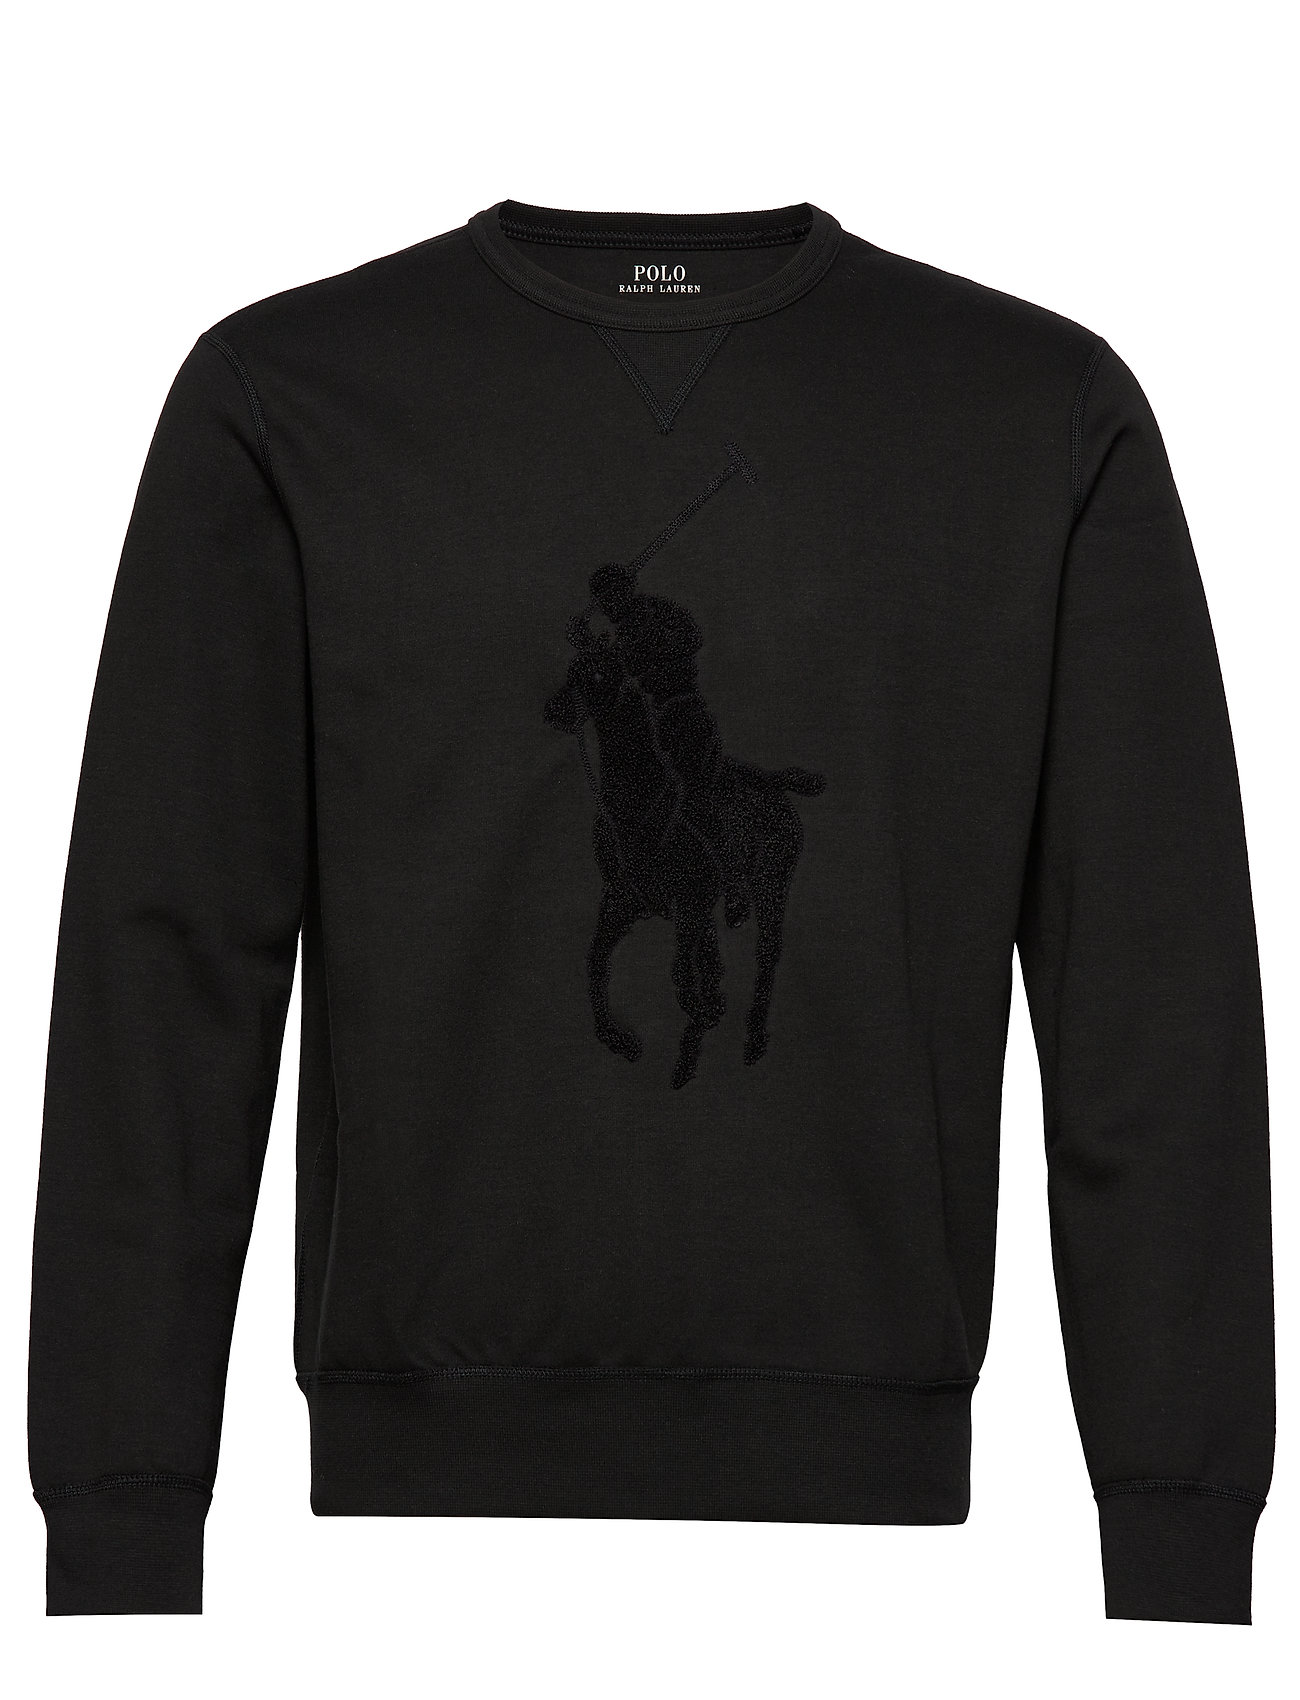 Polo Ralph Lauren Big Pony Sweatshirt - POLO BLACK